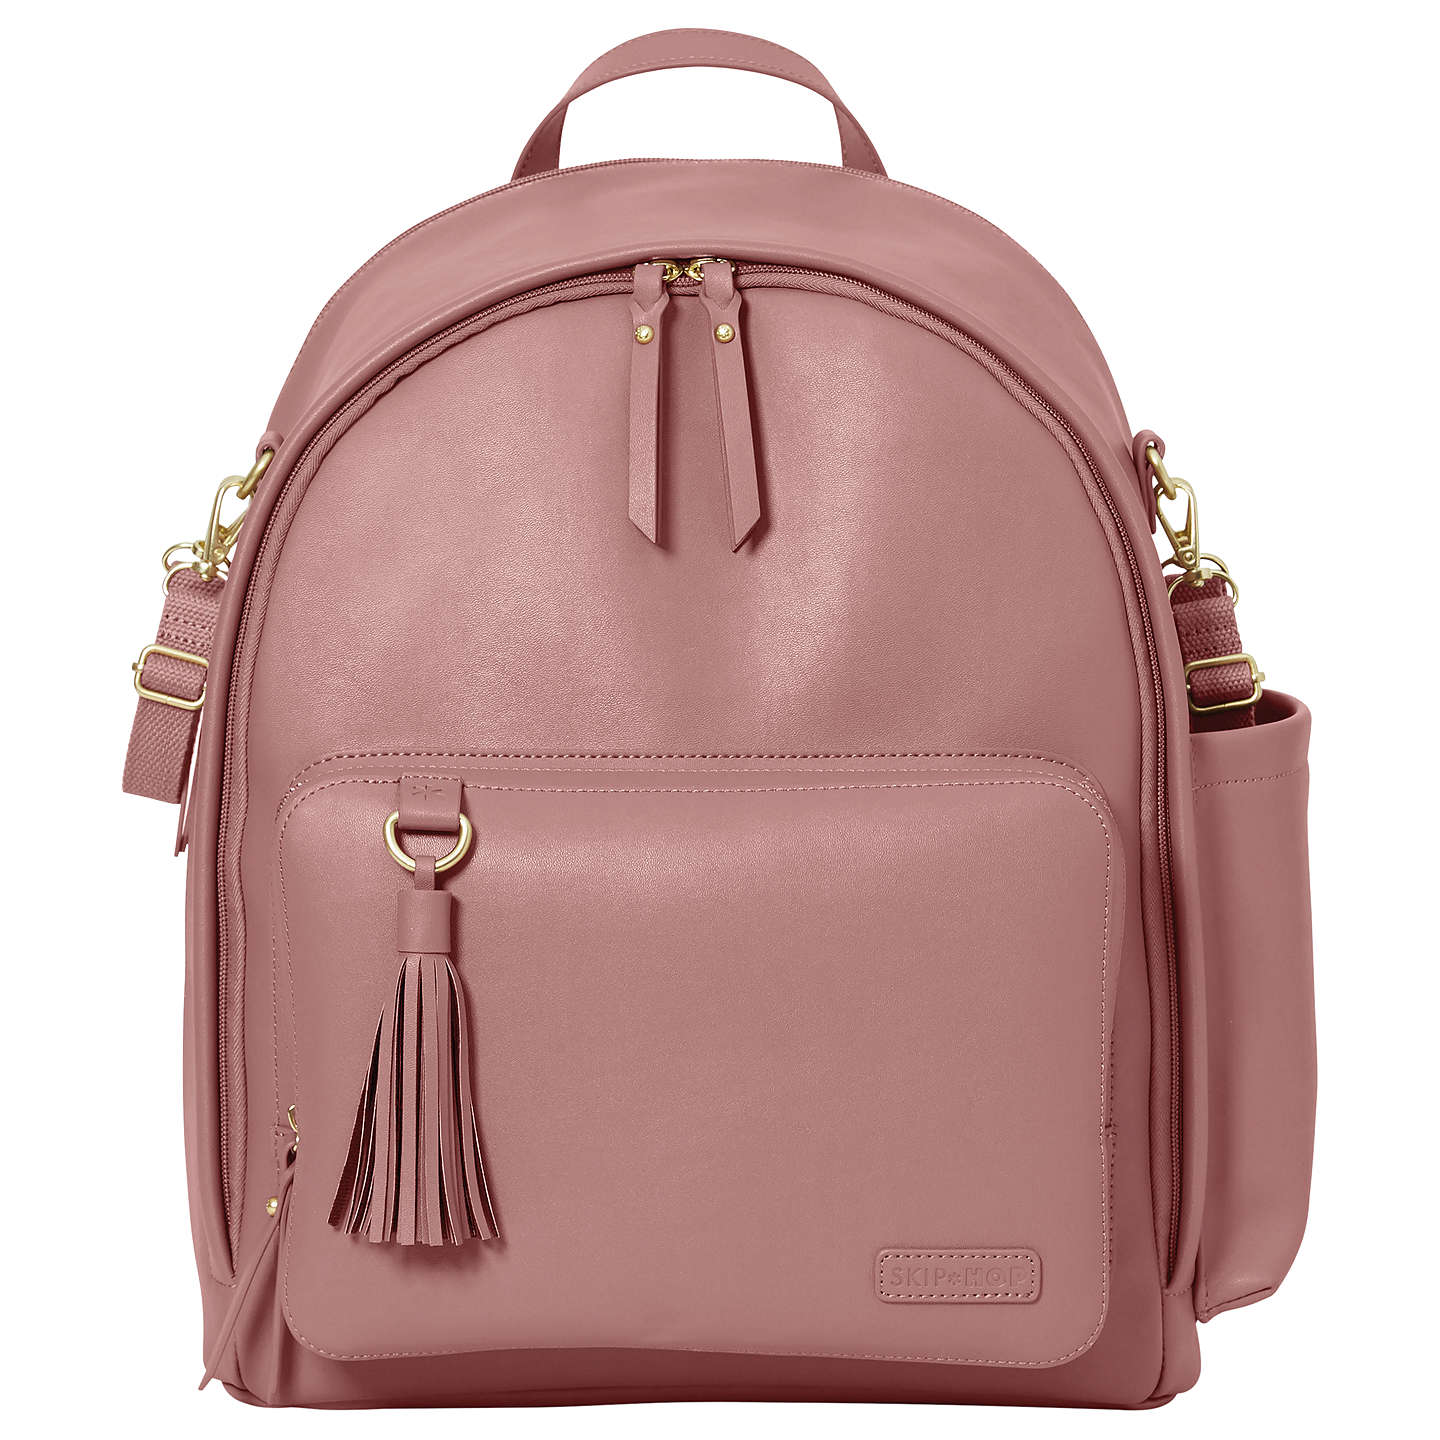 Skip Hop Greenwich Backpack, Dusty Rose by Skip Hop